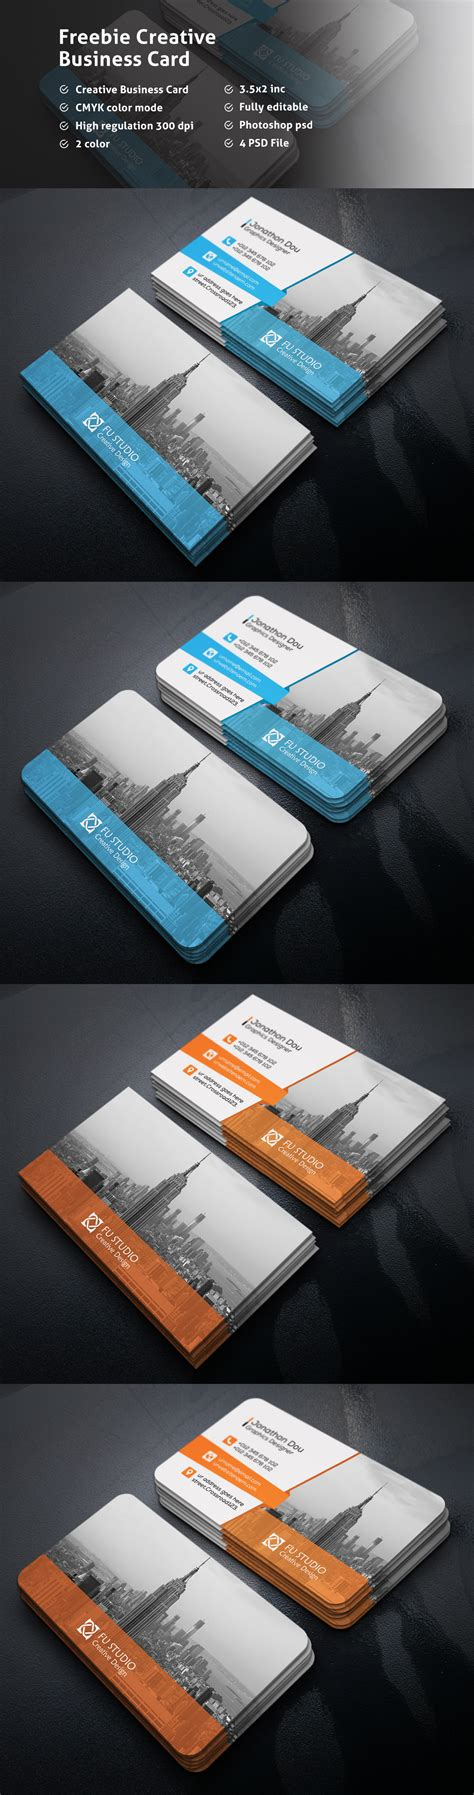 business card template psd behance freebie creative business card on behance